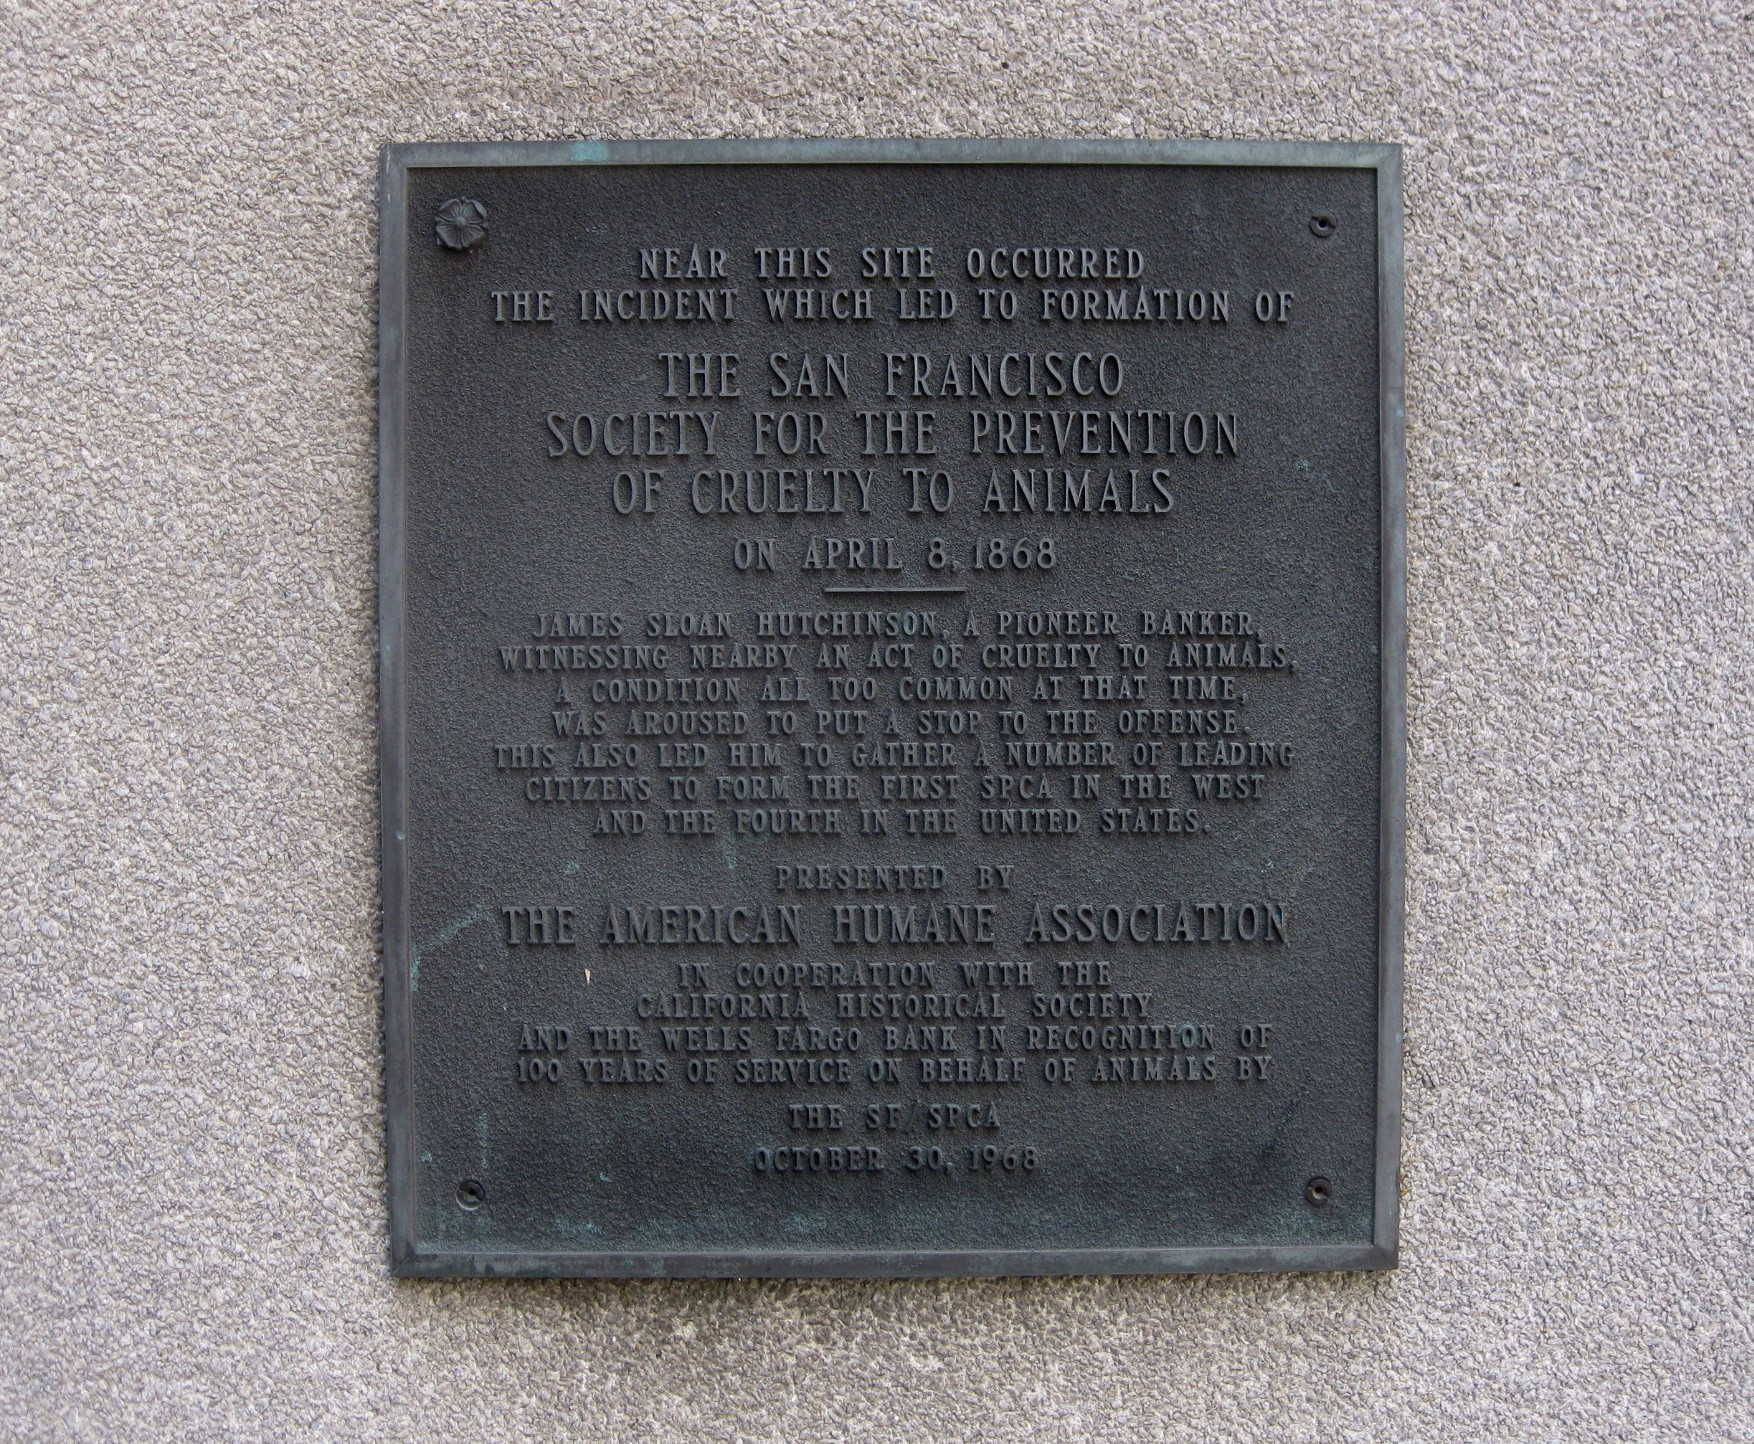 San Francisco Society for the Prevention of Cruelty to Animals (SF SPCA) Historical Marker